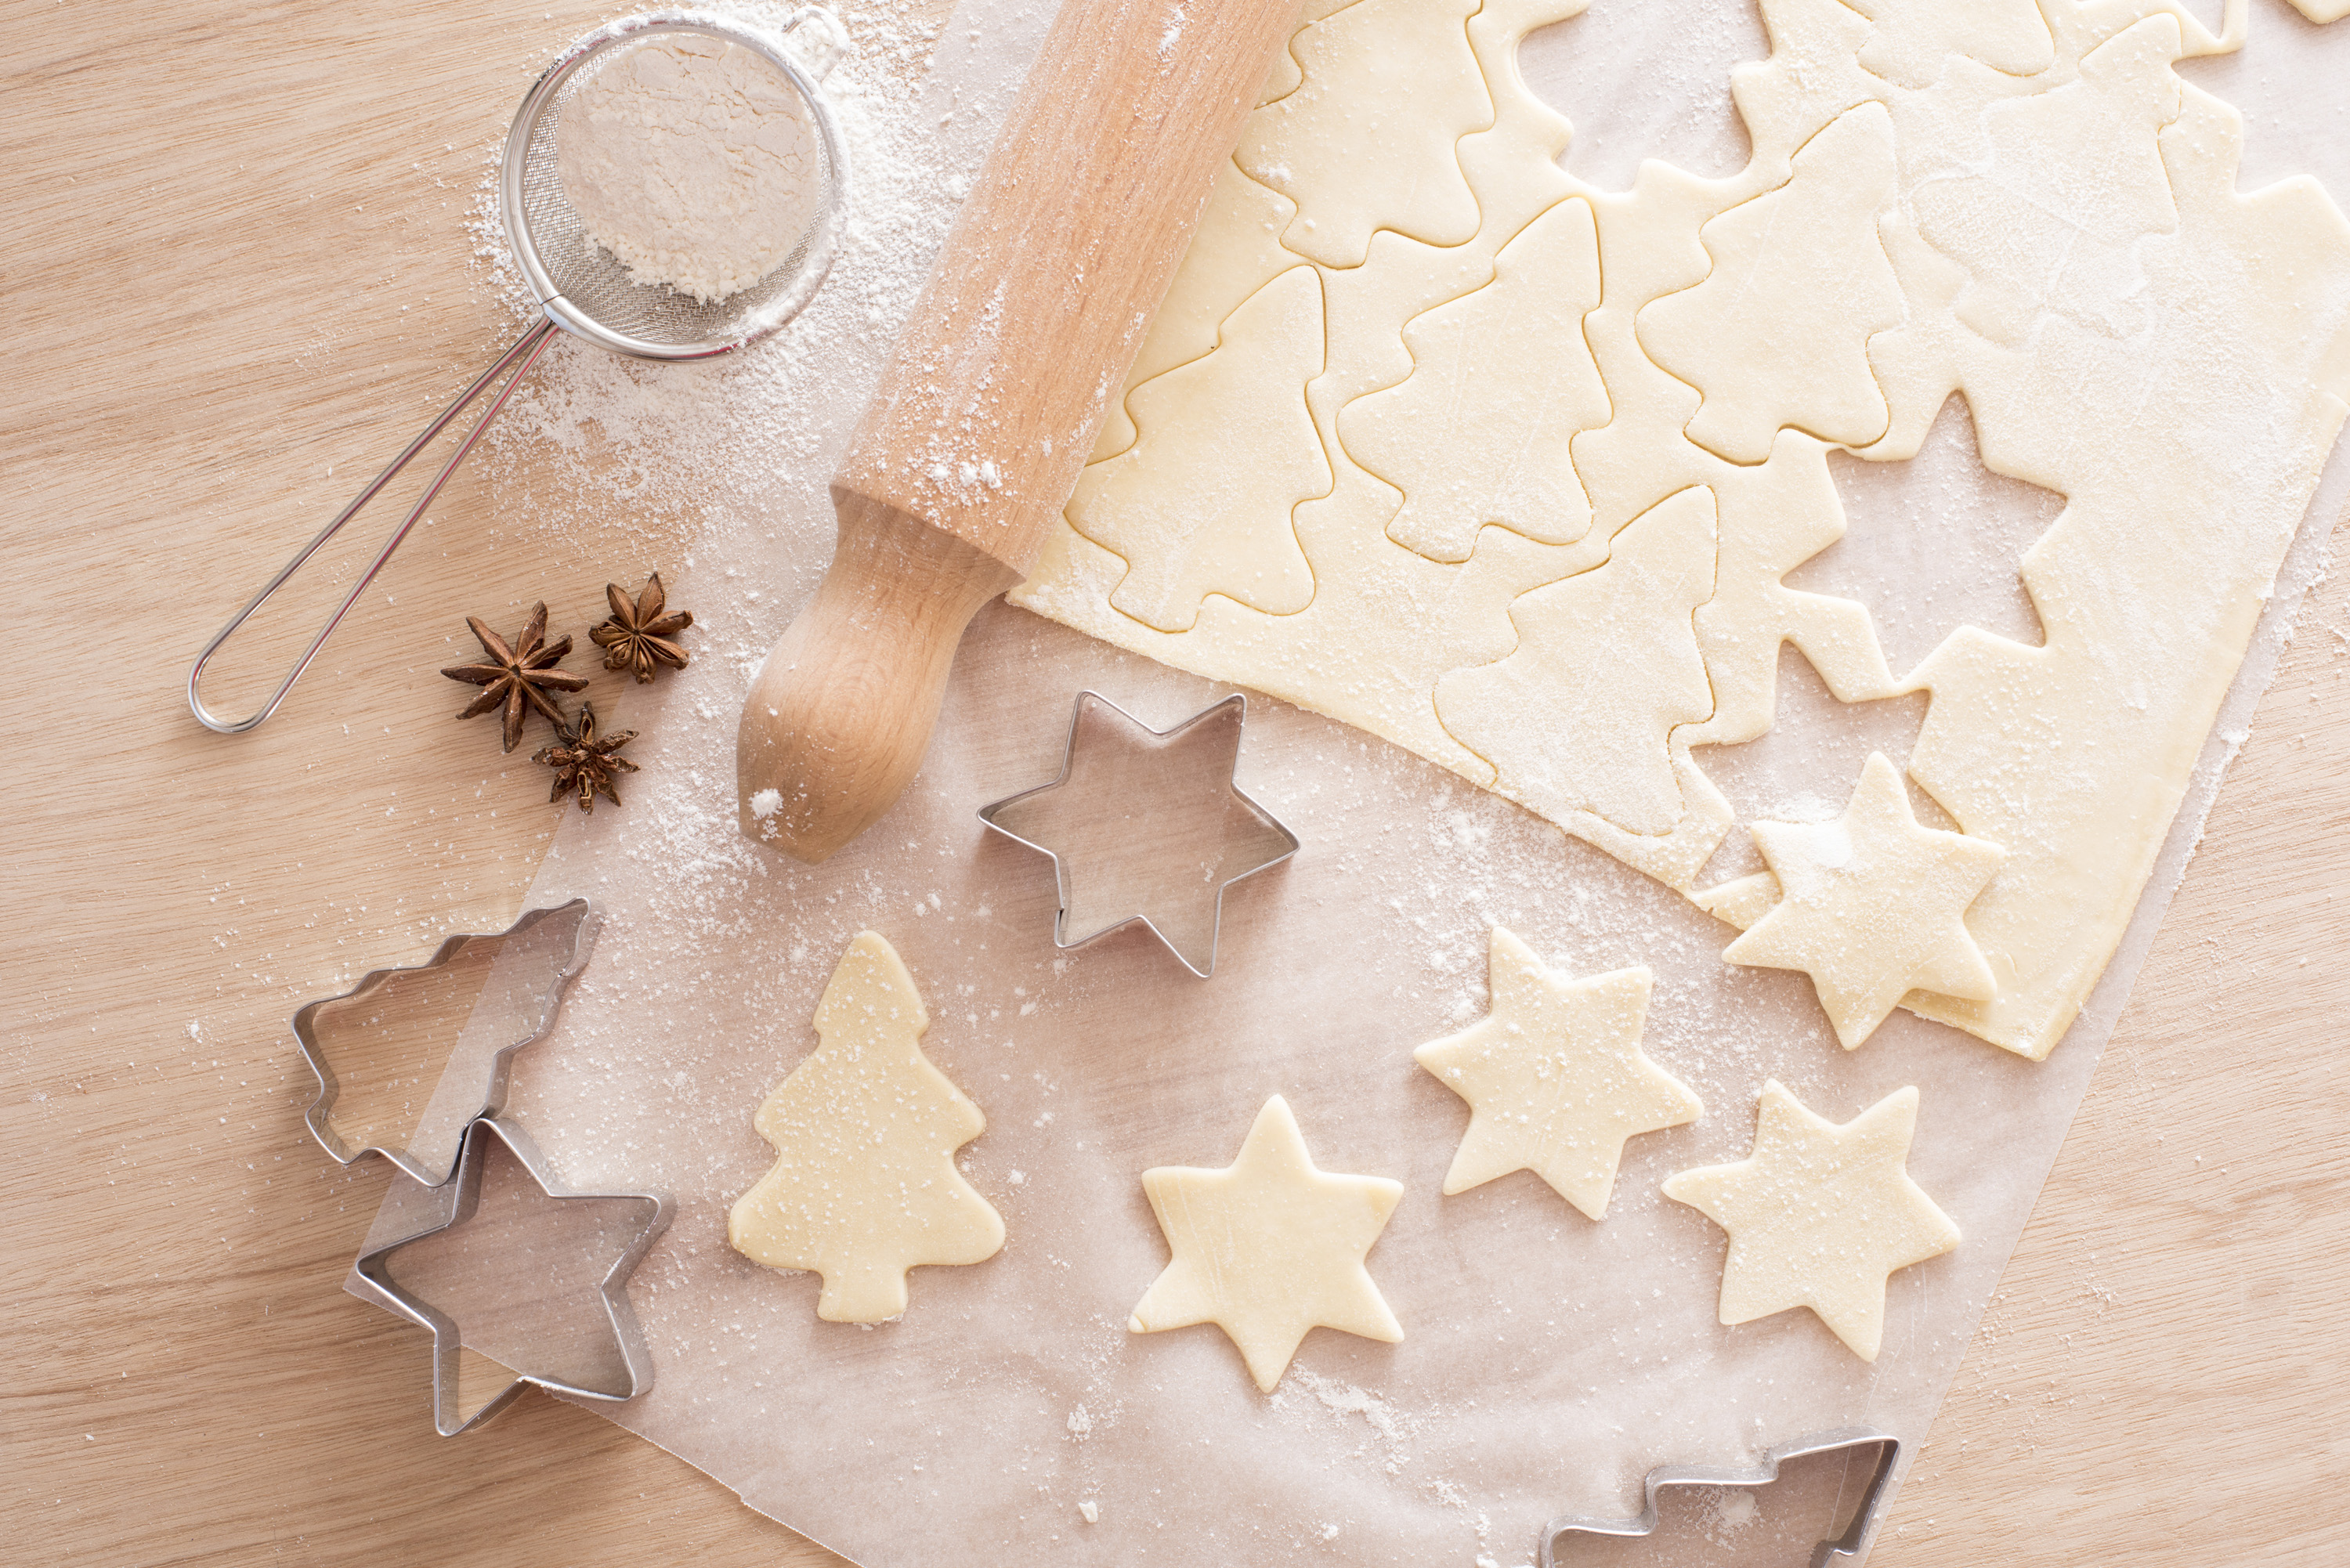 Baking traditional spicy Christmas biscuits with uncooked pastry cut into tree and star shapes alongside metal cookie cutters, rolling pin, sieve and star anise spice, overhead view